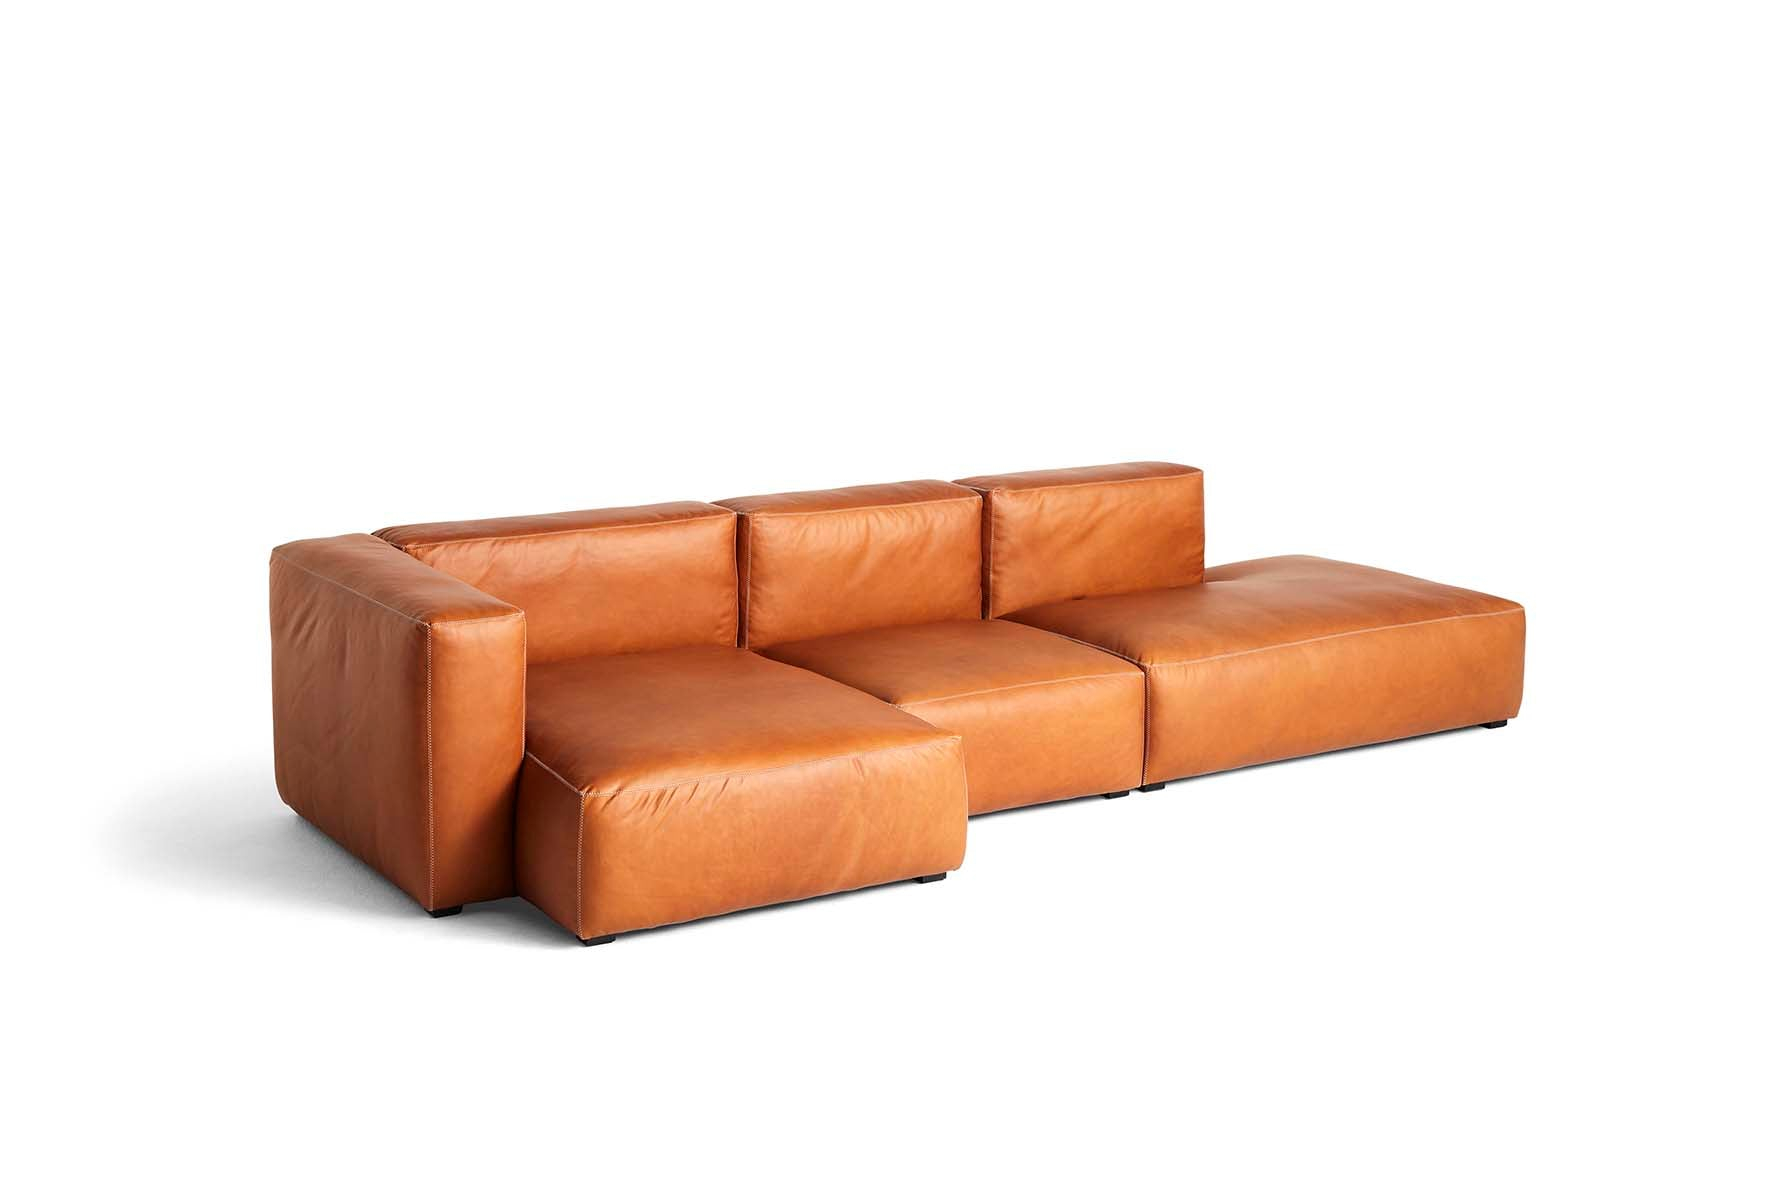 HAY - Mags Soft Sofa - 3 Seater - Combination 4 with Left Armrest